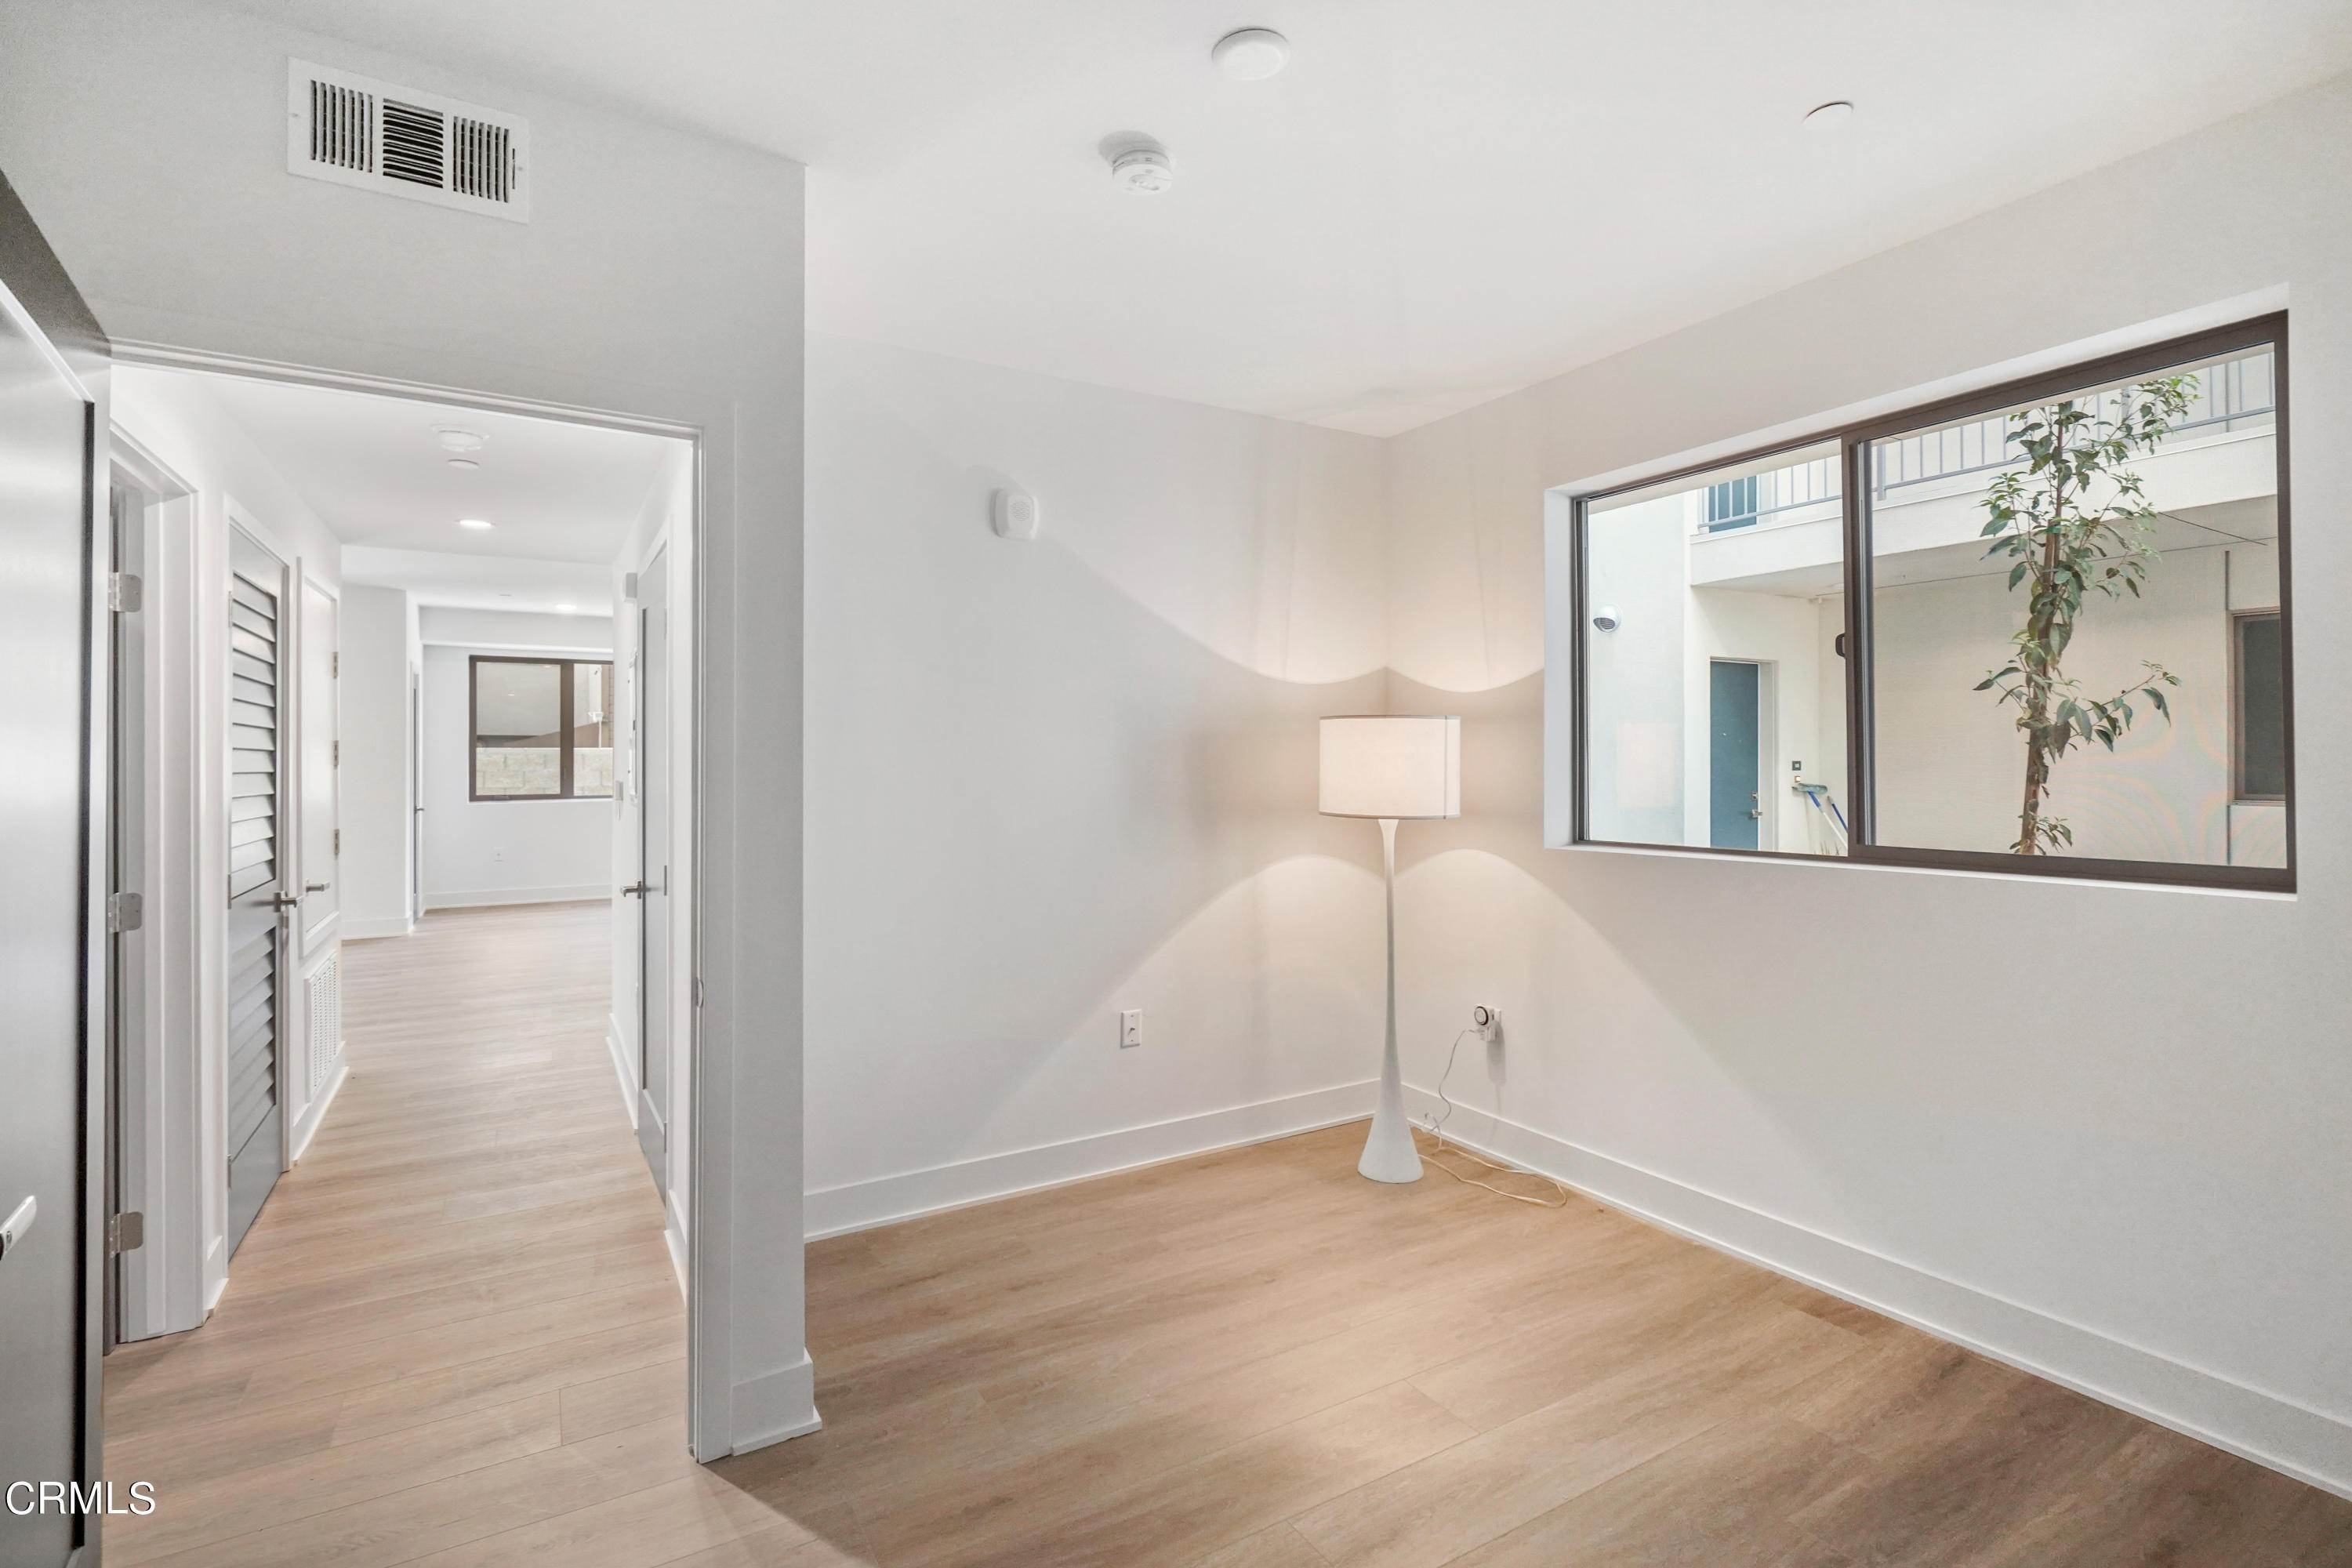 25. Condominiums for Sale at 518 East windsor Road 106 #106 518 East windsor Road 106 Glendale, California 91205 United States